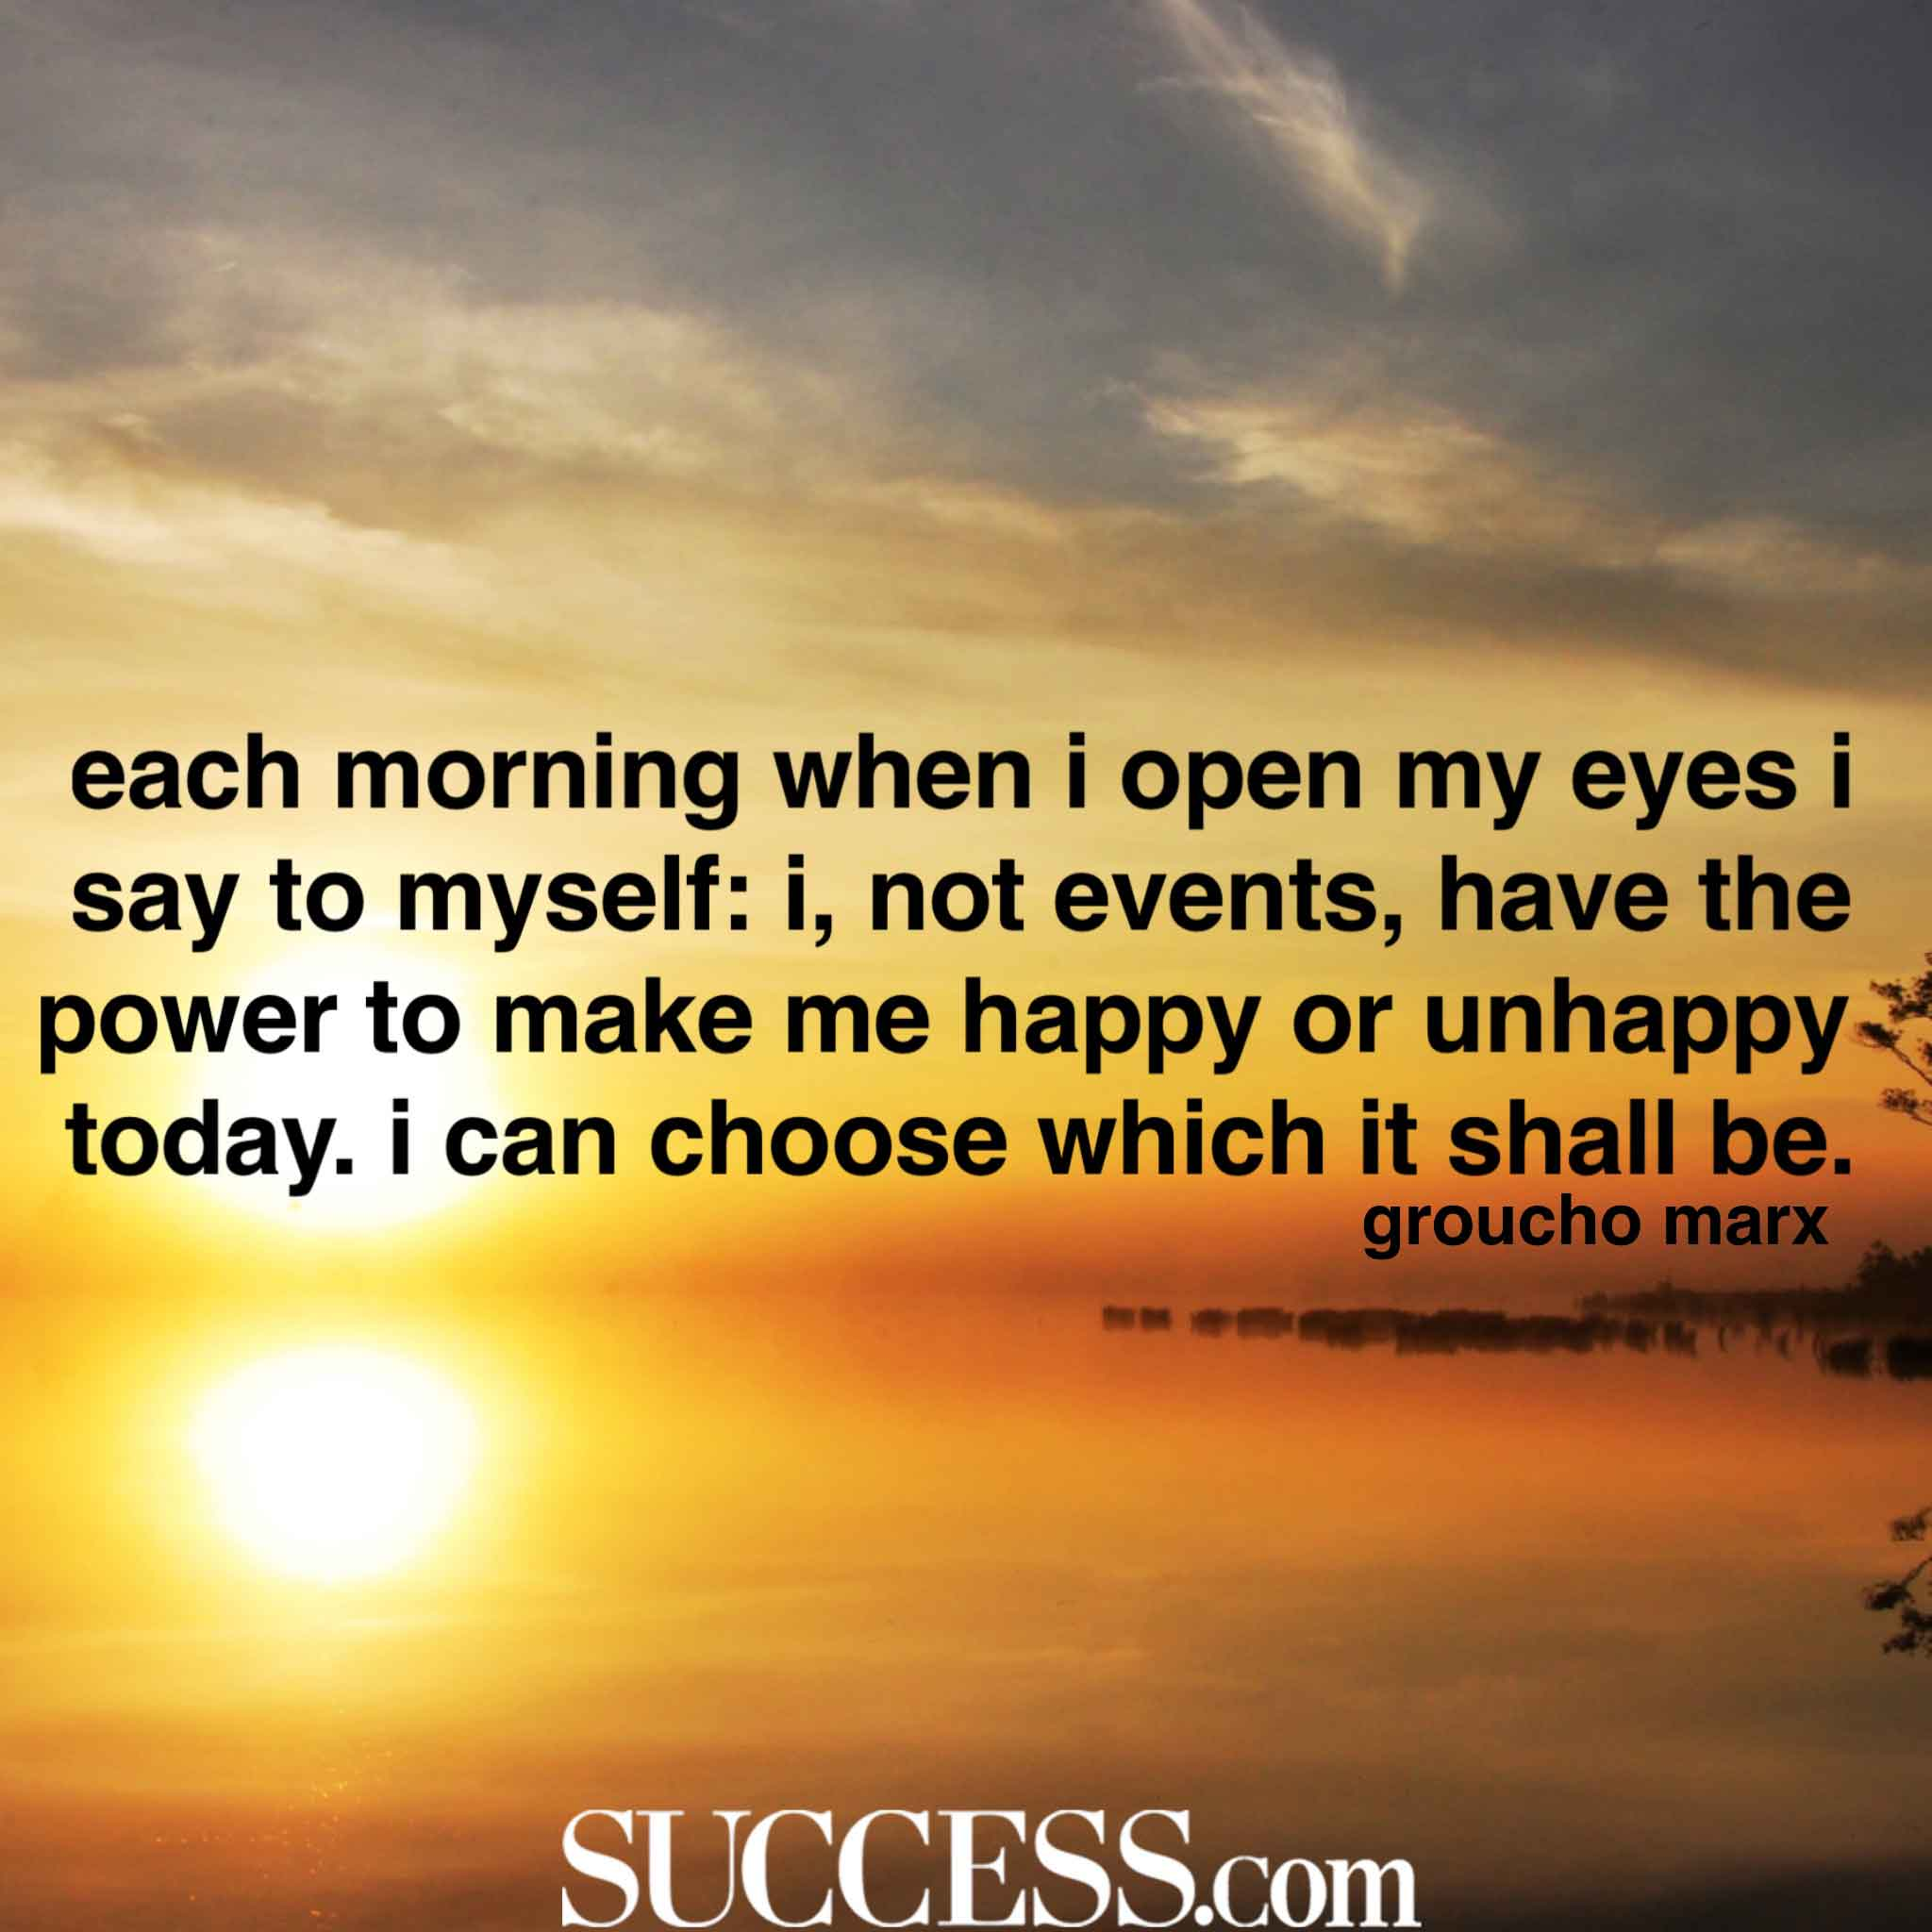 15 Positive Affirmations for an Awesome Day